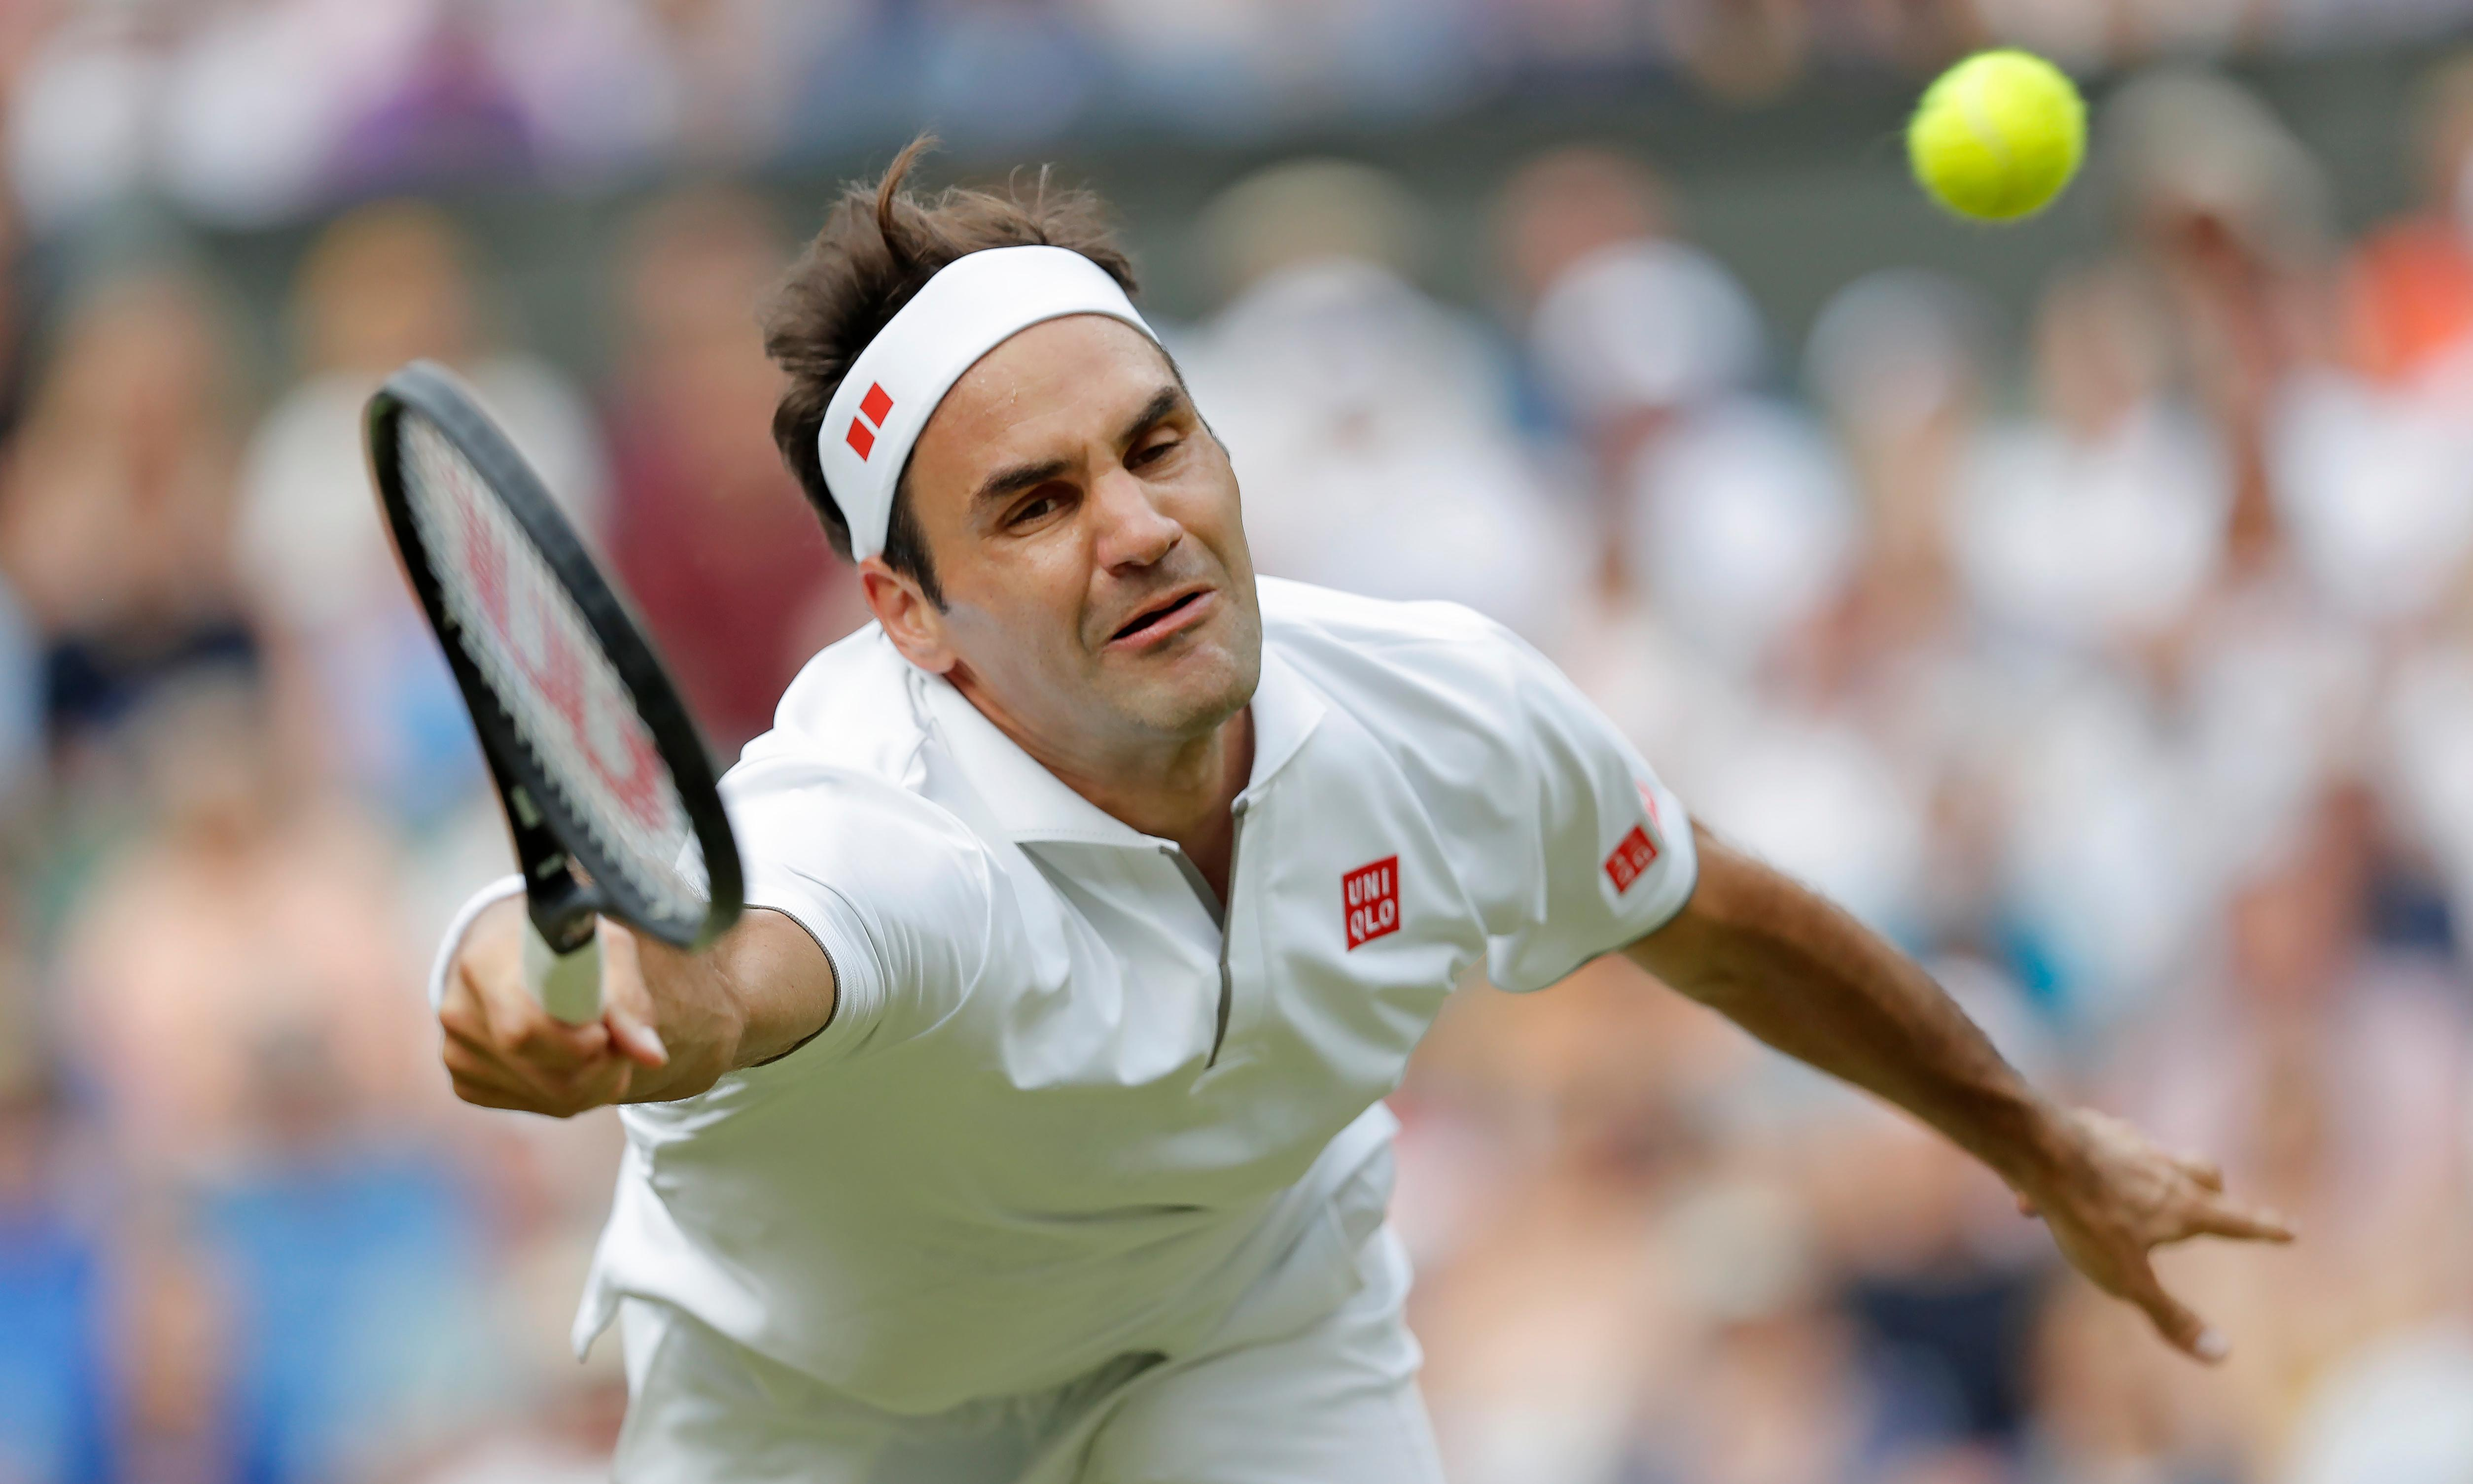 Roger Federer pushed by Kei Nishikori before completing Wimbledon century